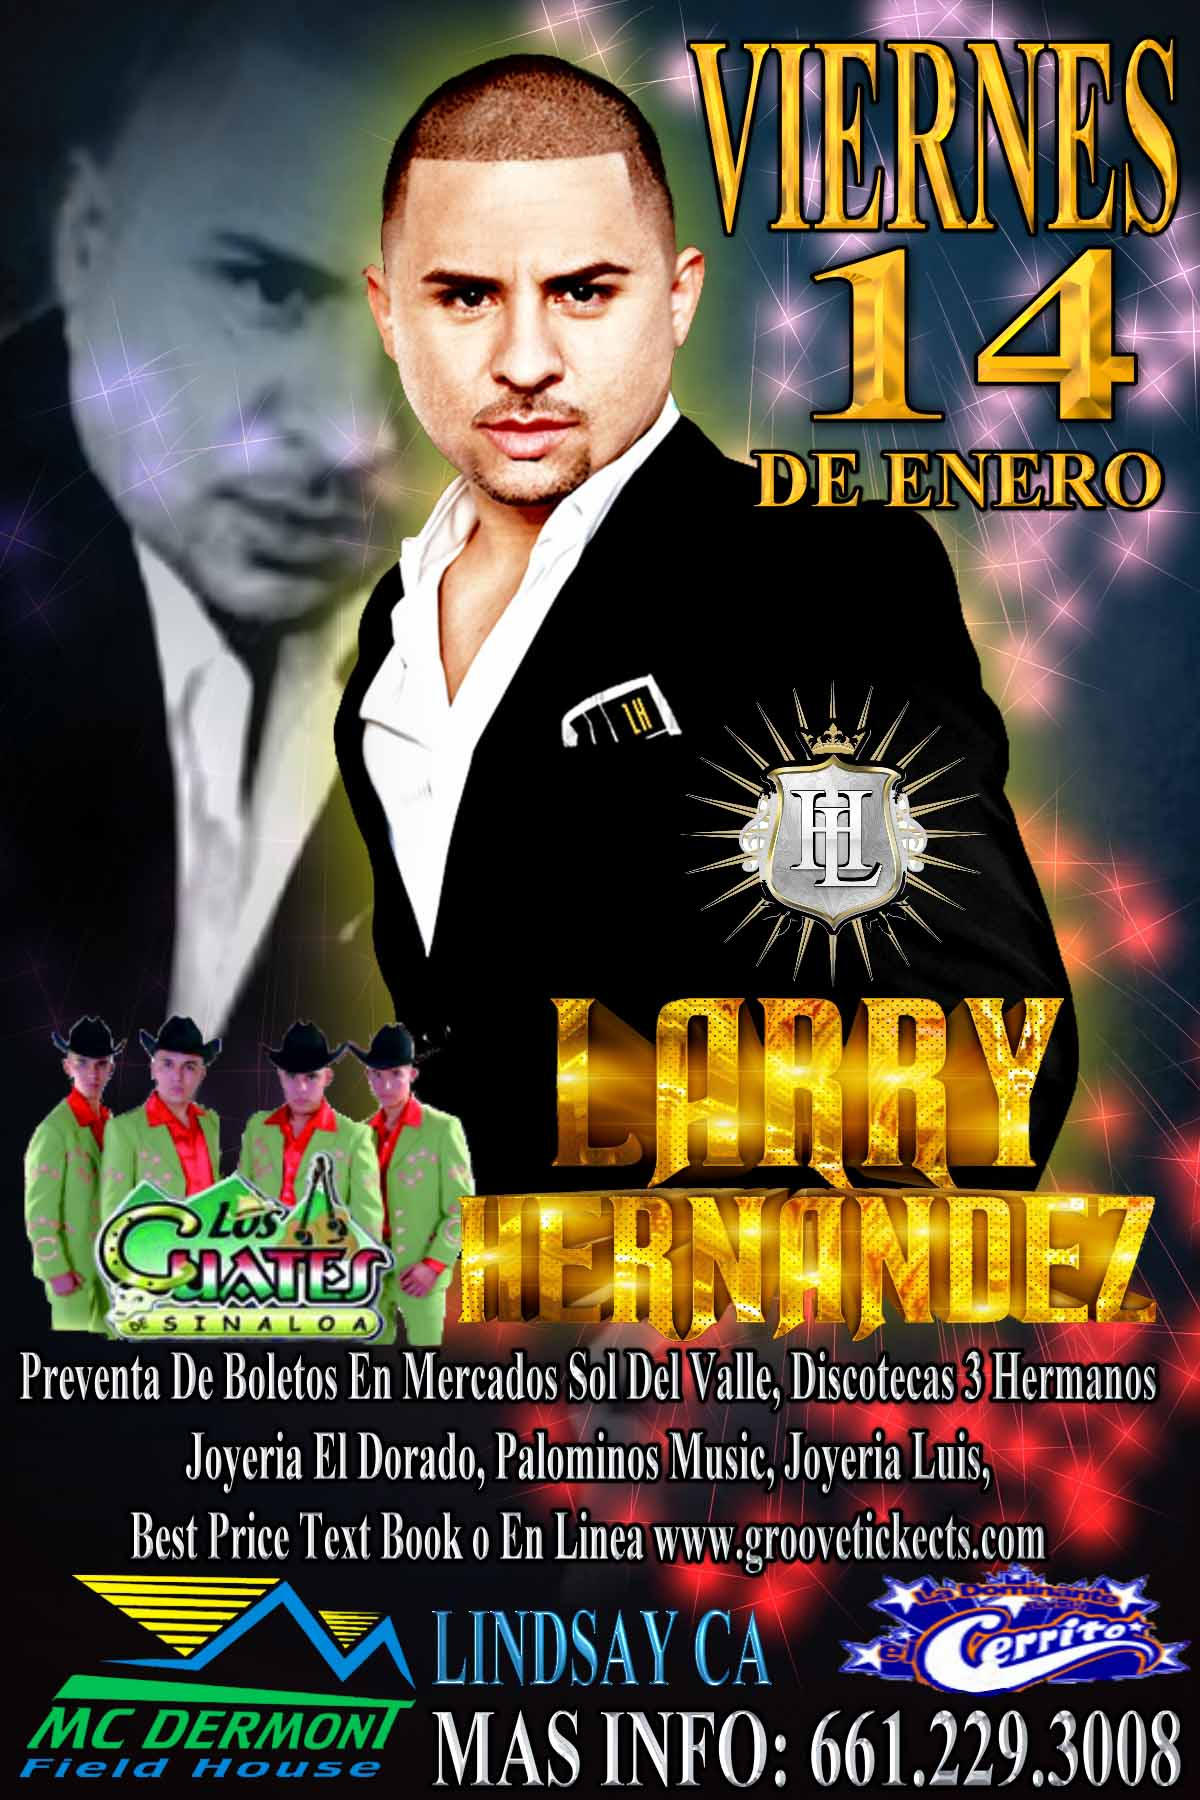 Larry Hernandez Tickets